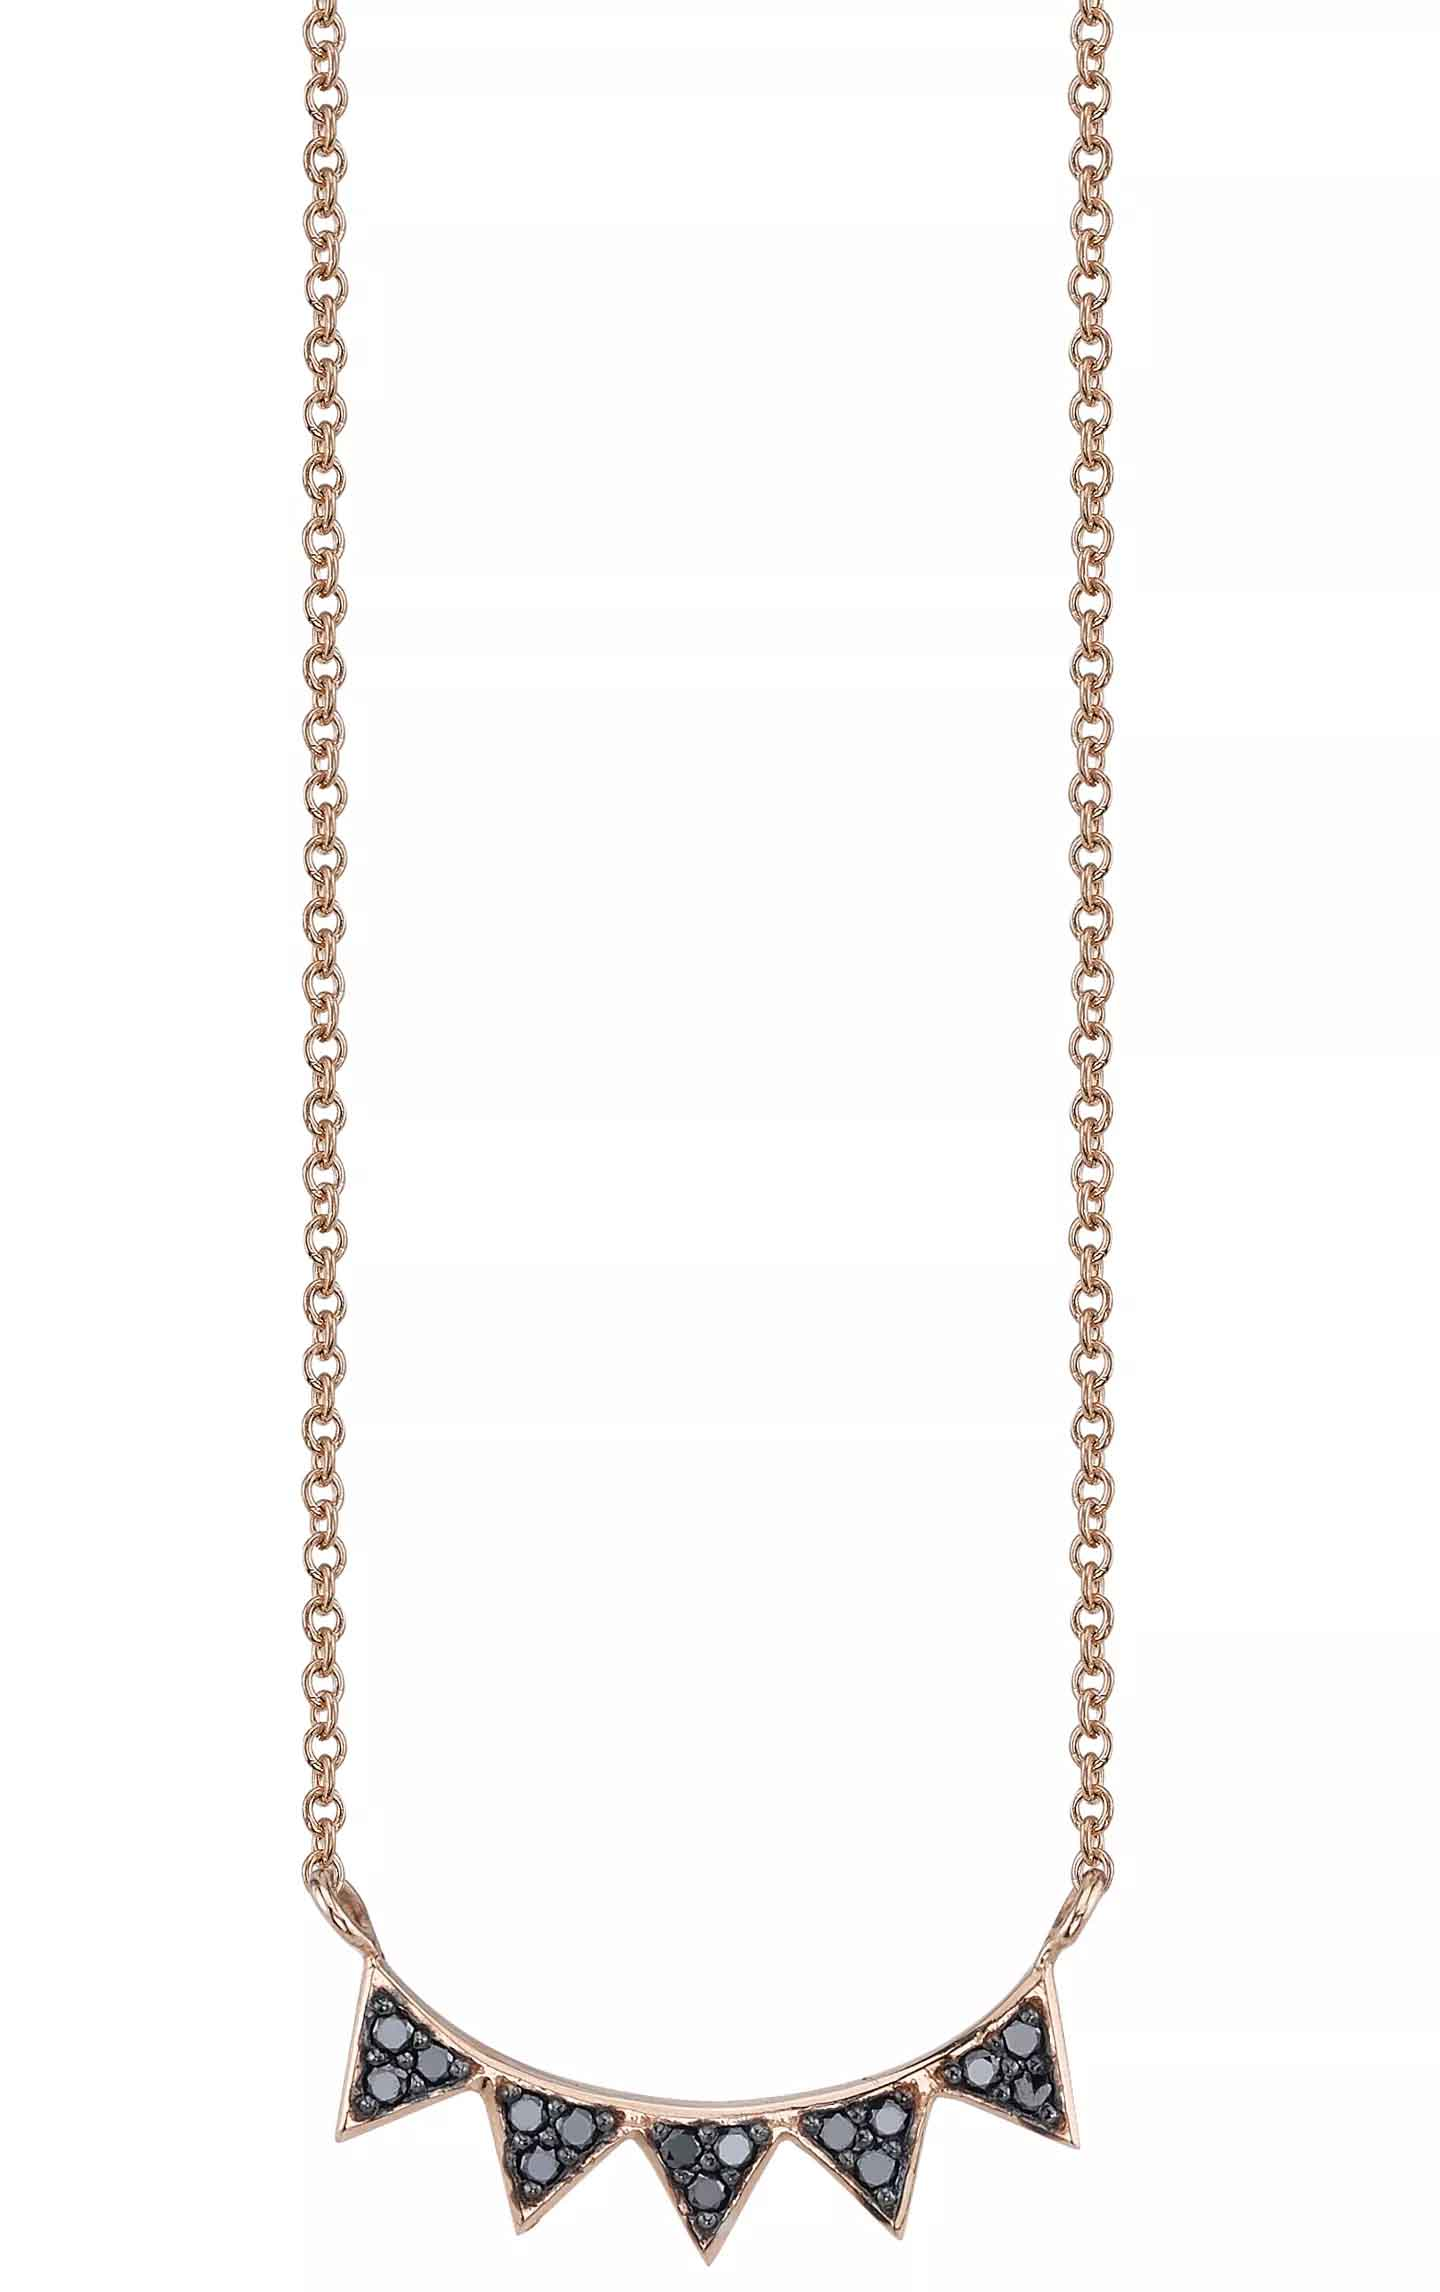 5 Triangle necklace in rose gold with black diamonds